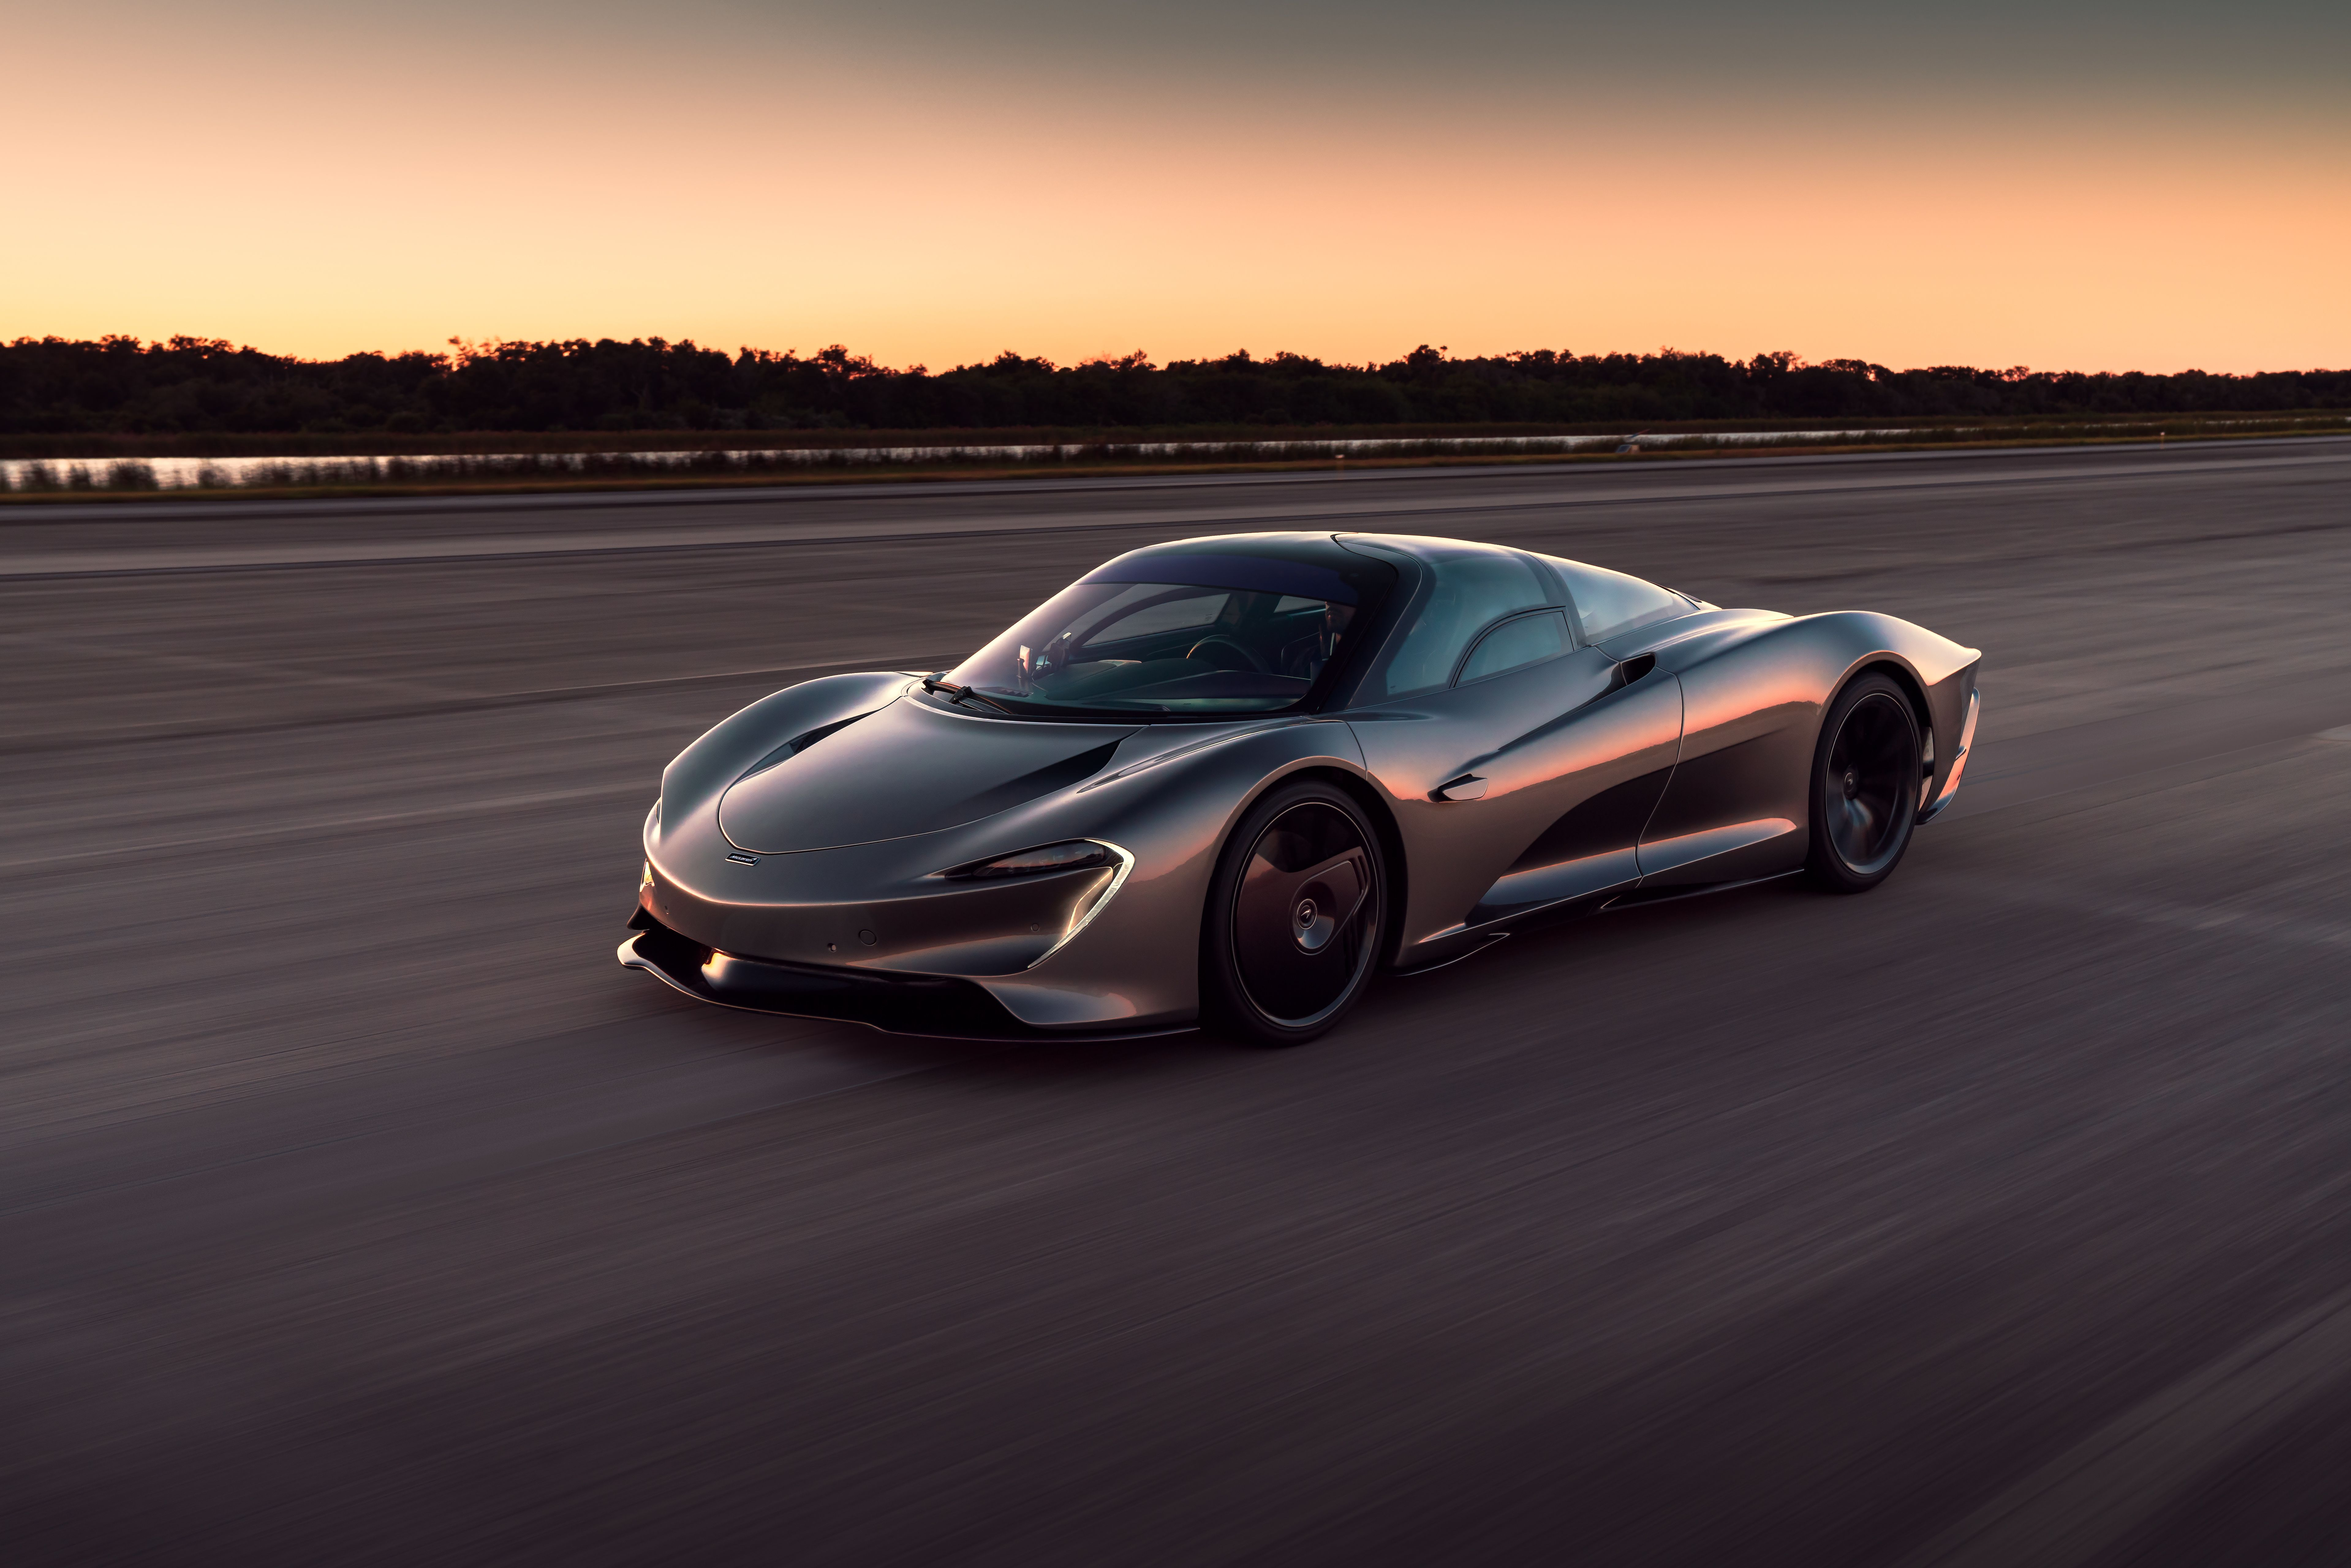 The Mclaren Speedtail Is Officially The Fastest Mclaren Ever Made Top Speed Fast Cars New Cars Power Cars